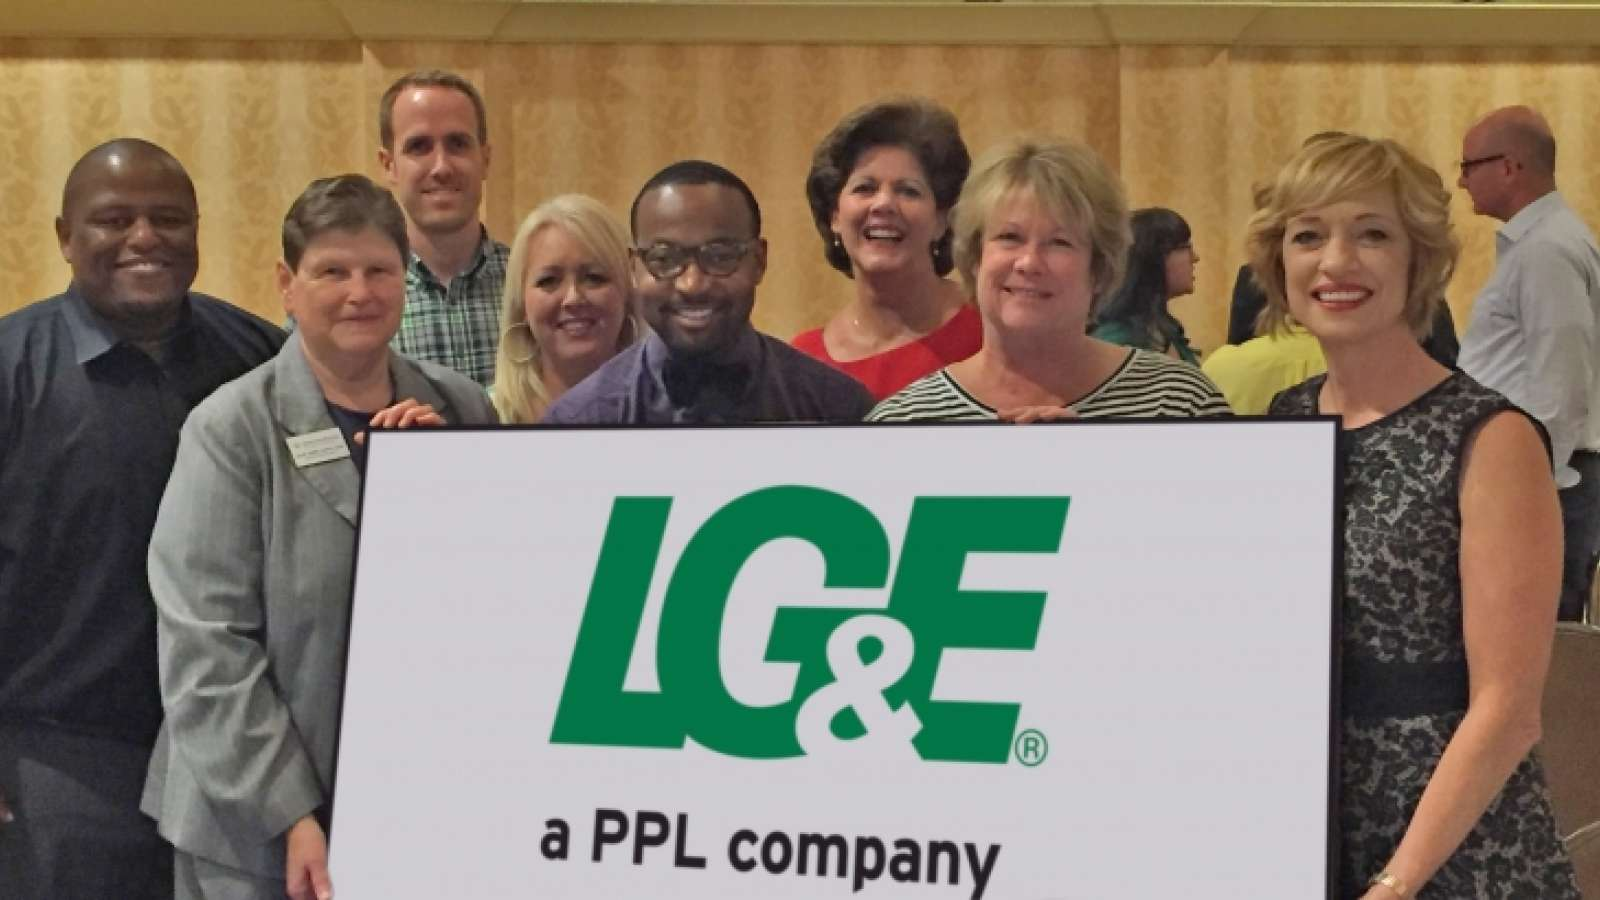 LG&E employees at a community event holding an LG&E sign